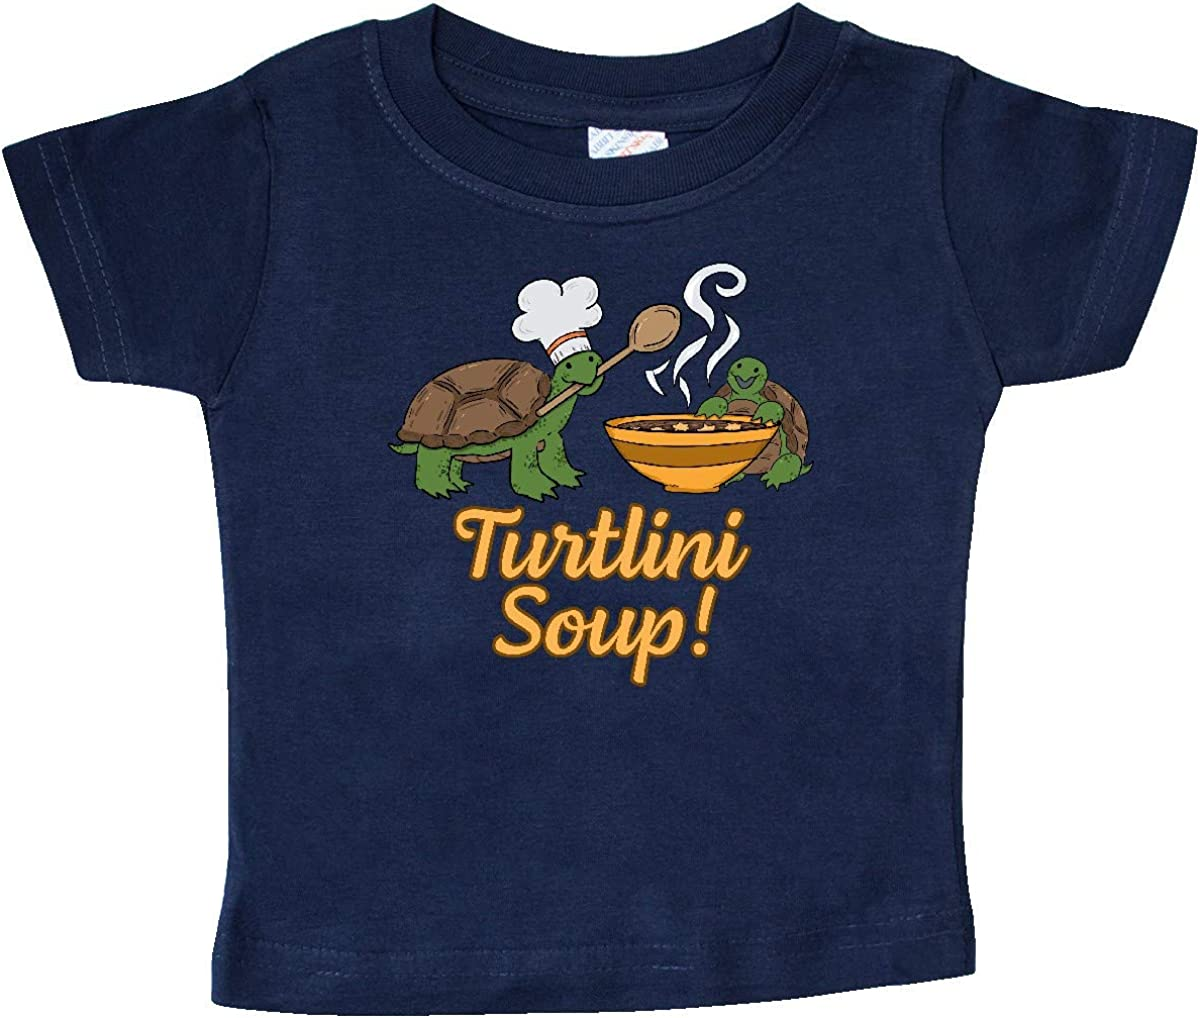 inktastic Turtlini Soup with Cute Turtle Chefs Baby T-Shirt